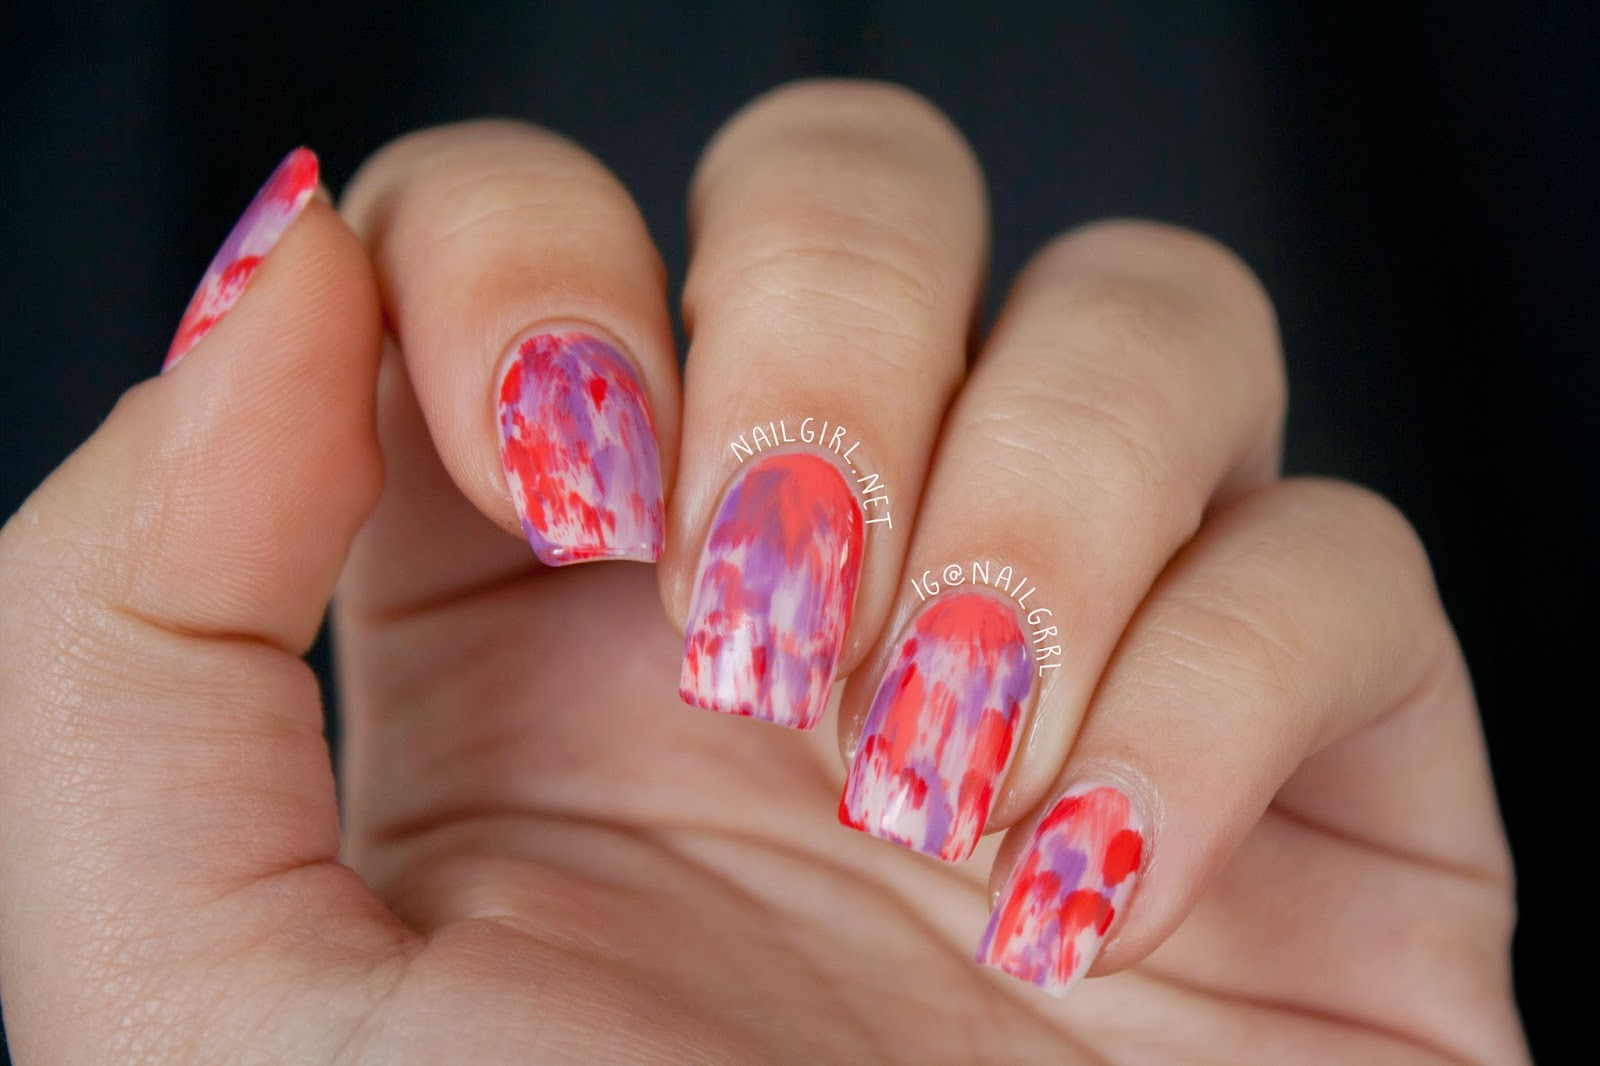 Nail Art Dry Brush Stroke Manicure Alexis Adrienne